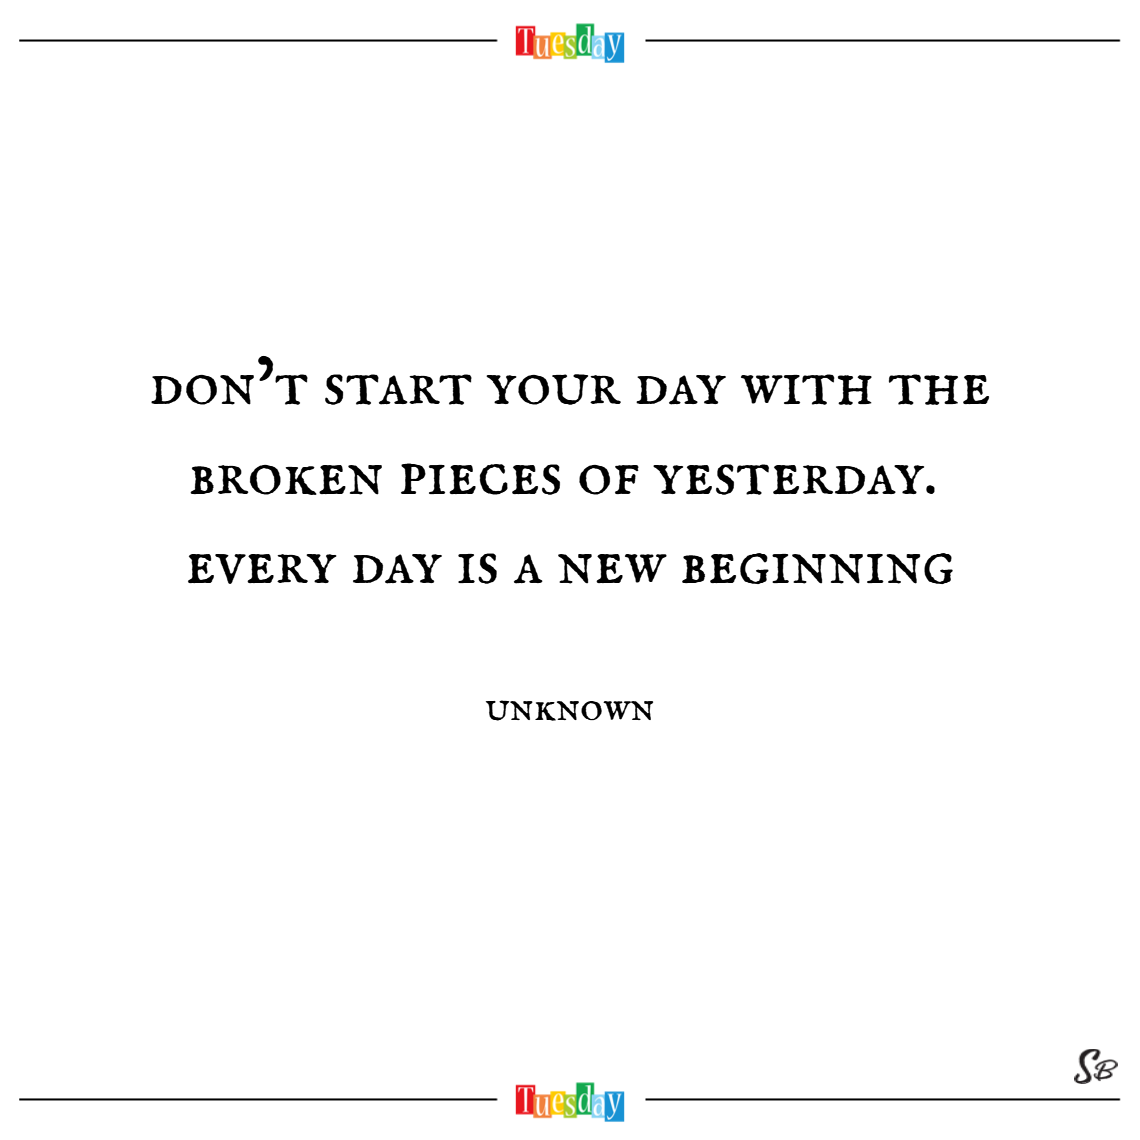 Don't start your day with the broken pieces of yesterday. every day is a new beginning. – unknown